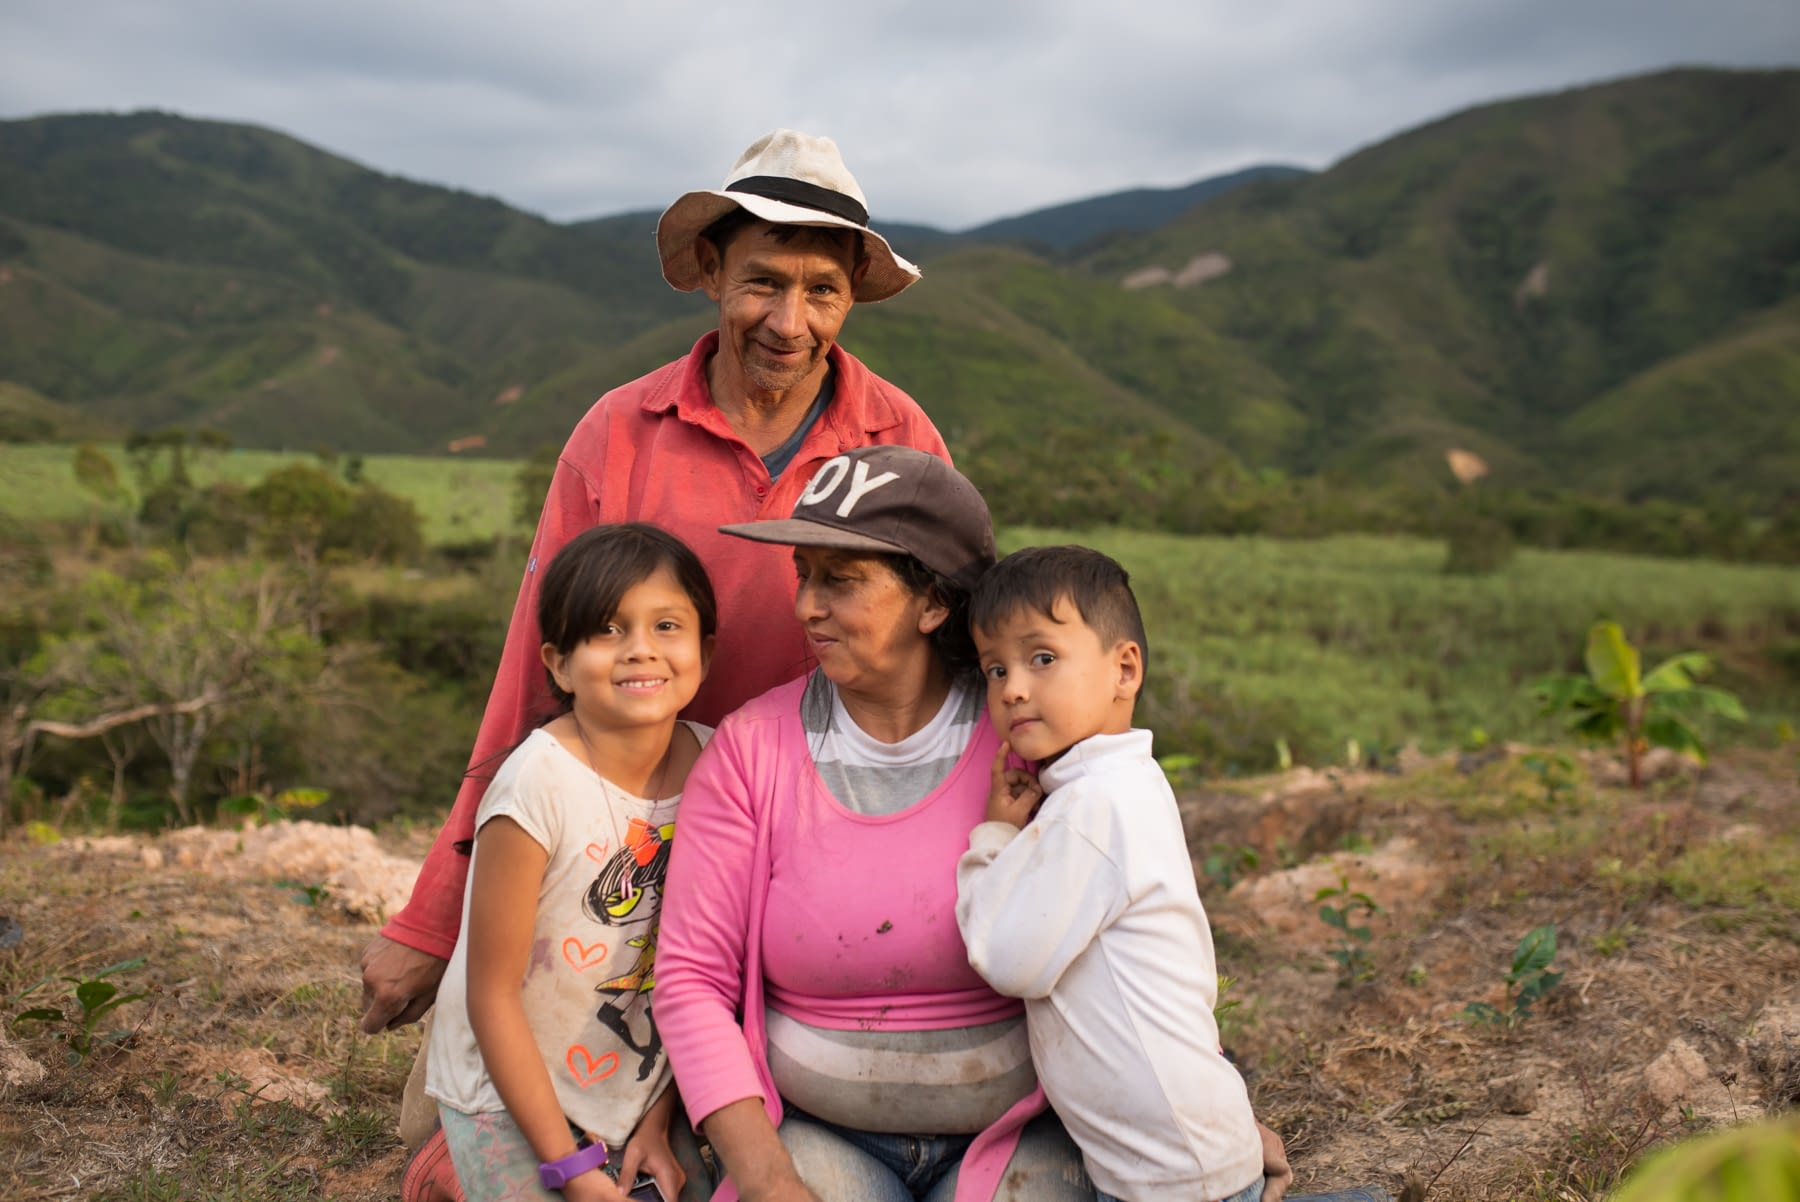 Family in a rural setting in Colombia